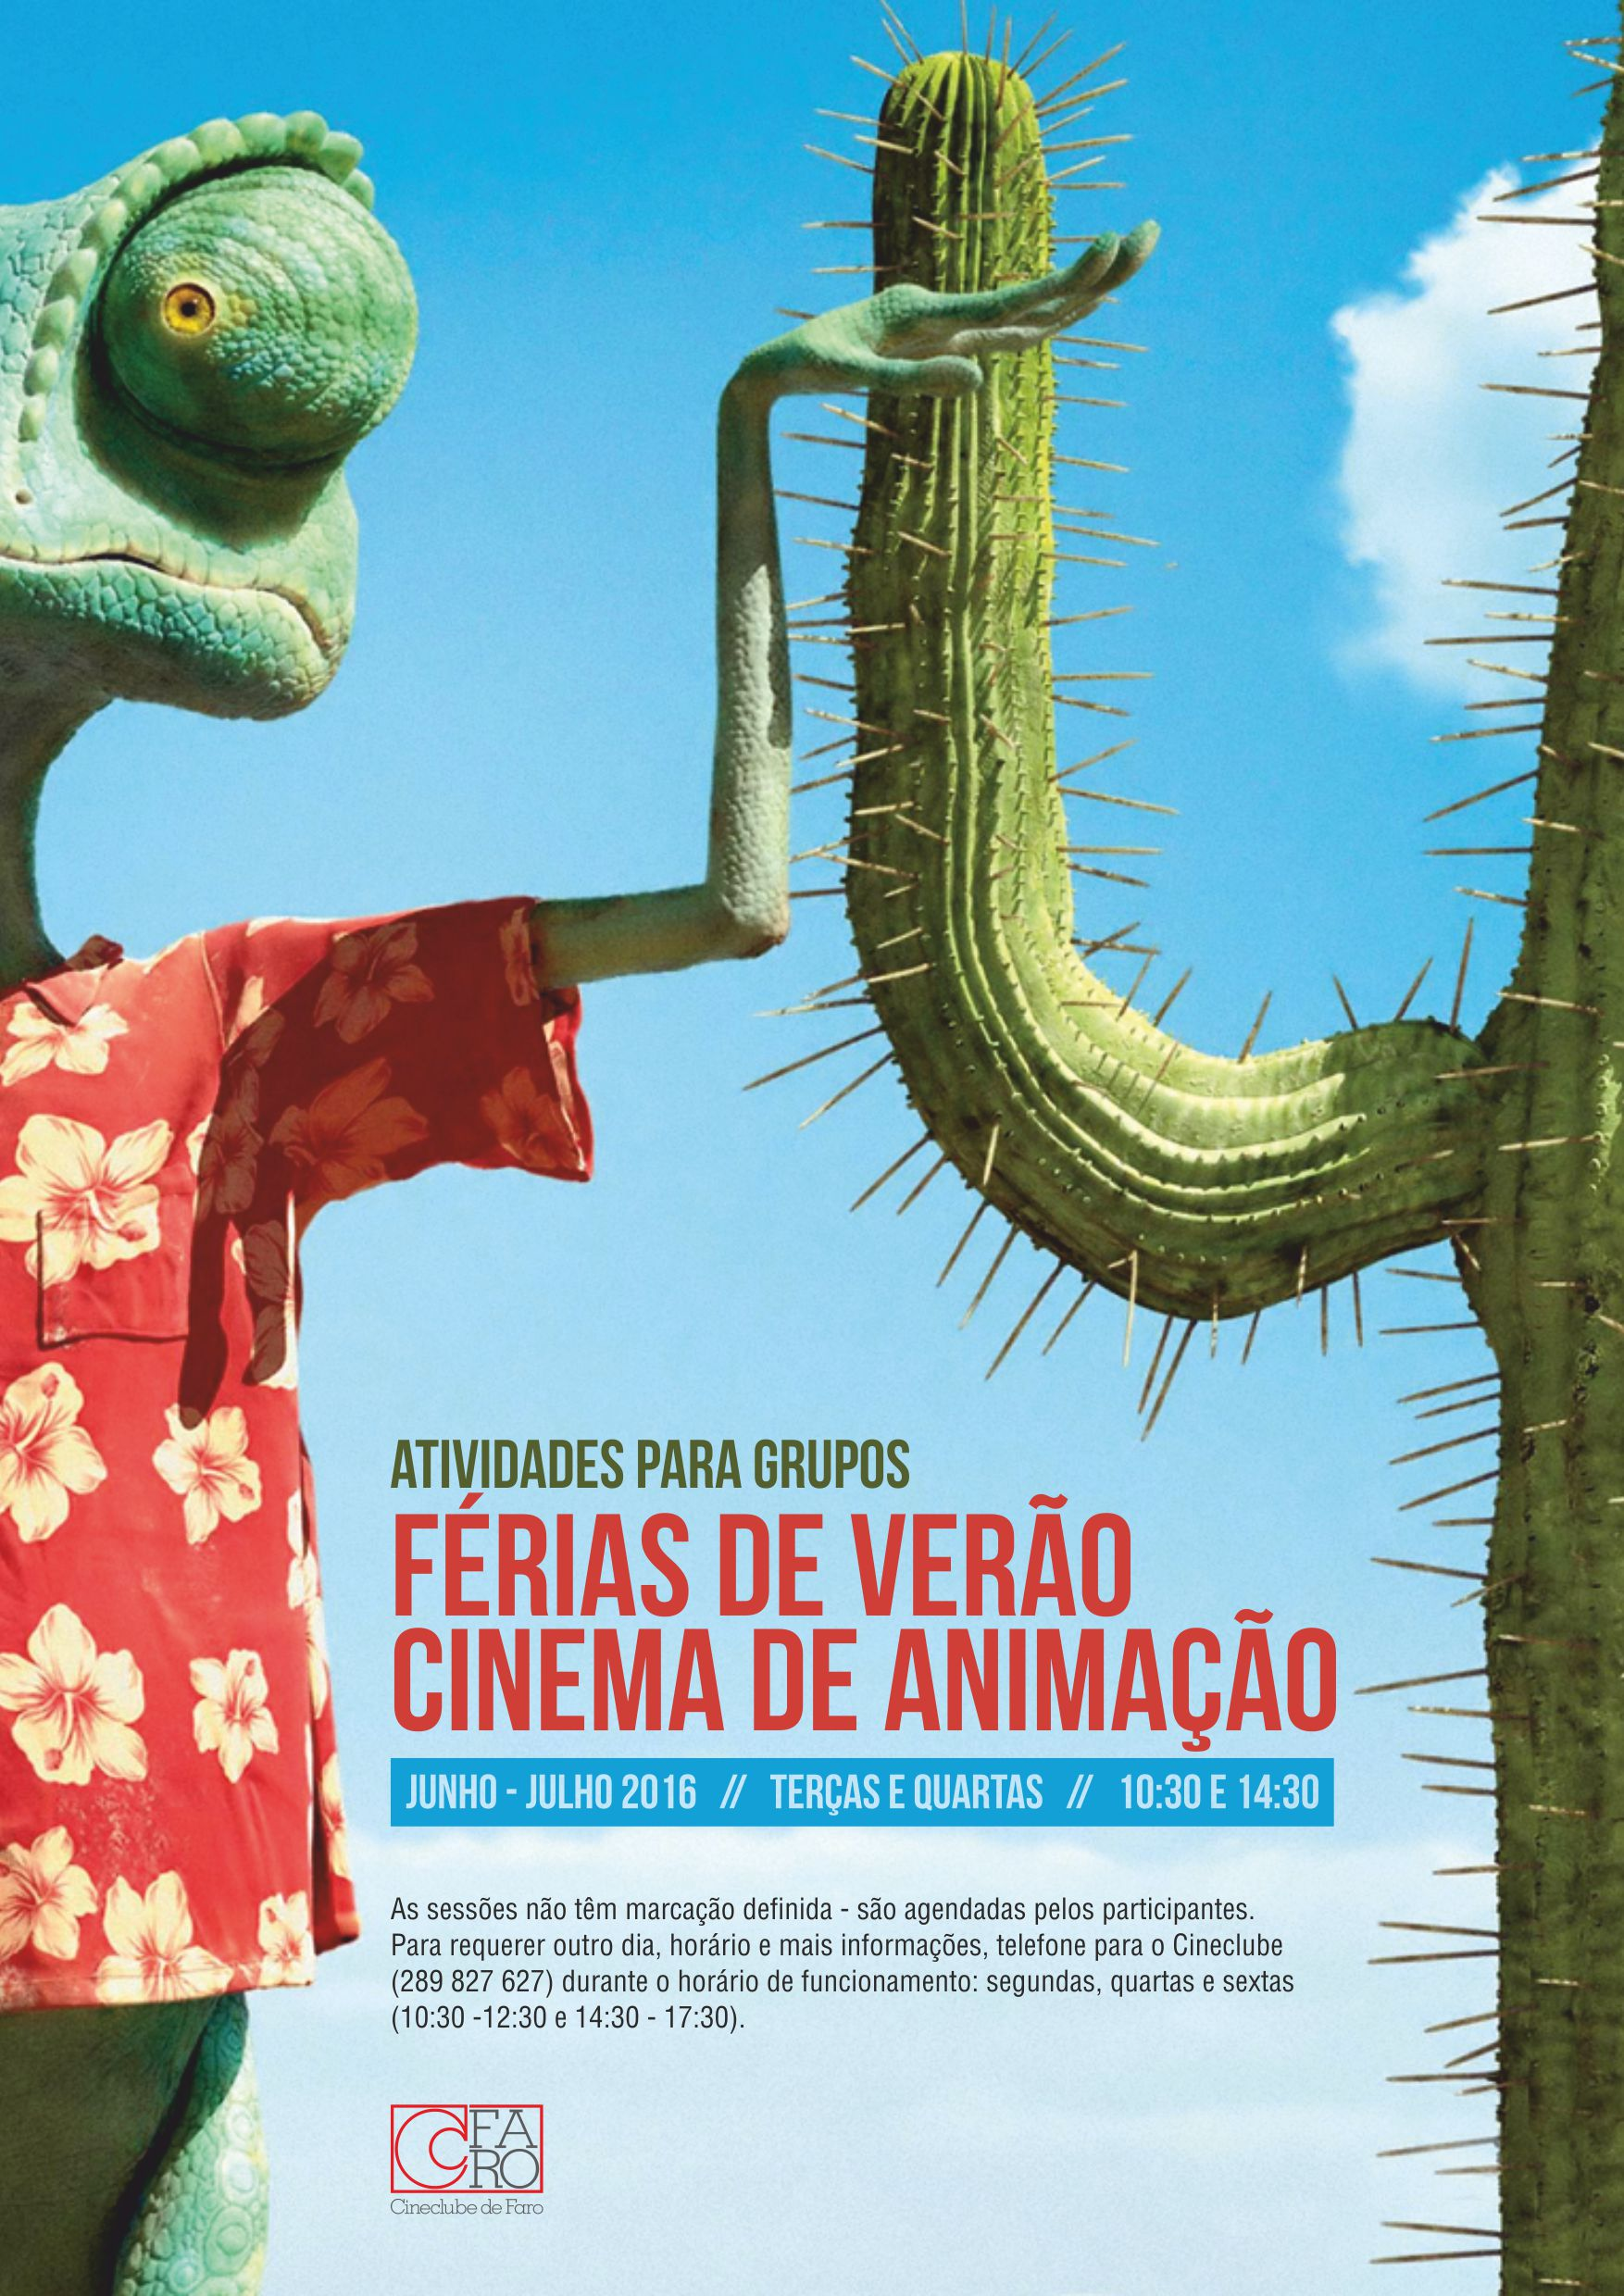 02 Cinema Animacao Verao NET